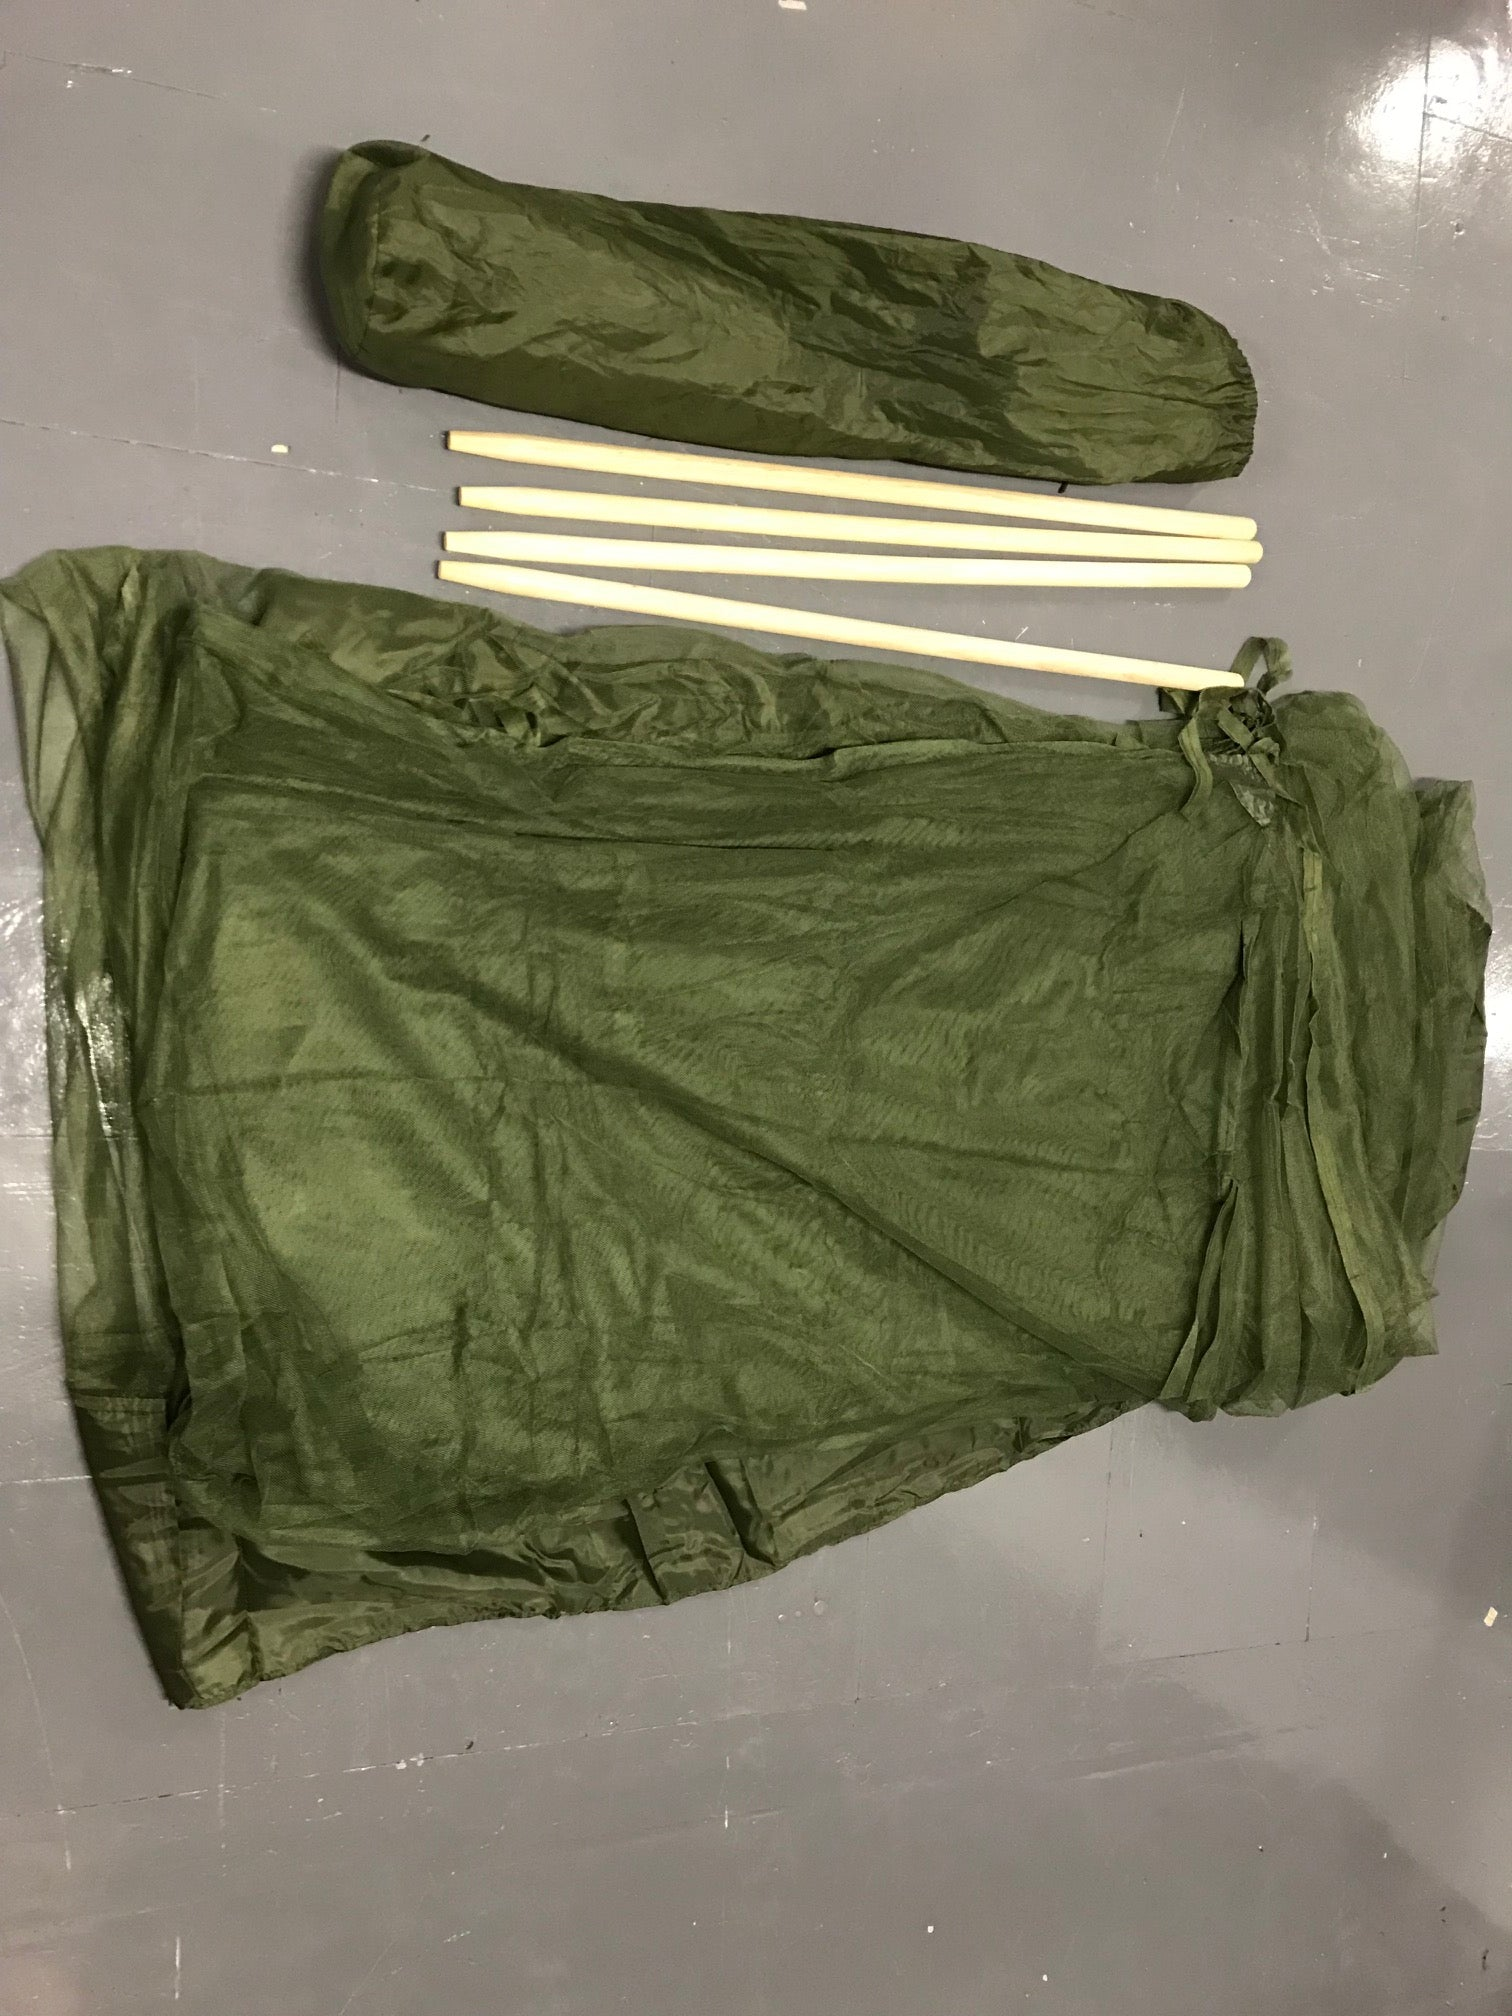 British army surplus moisquito net, 4 wood poles FOR COT BED